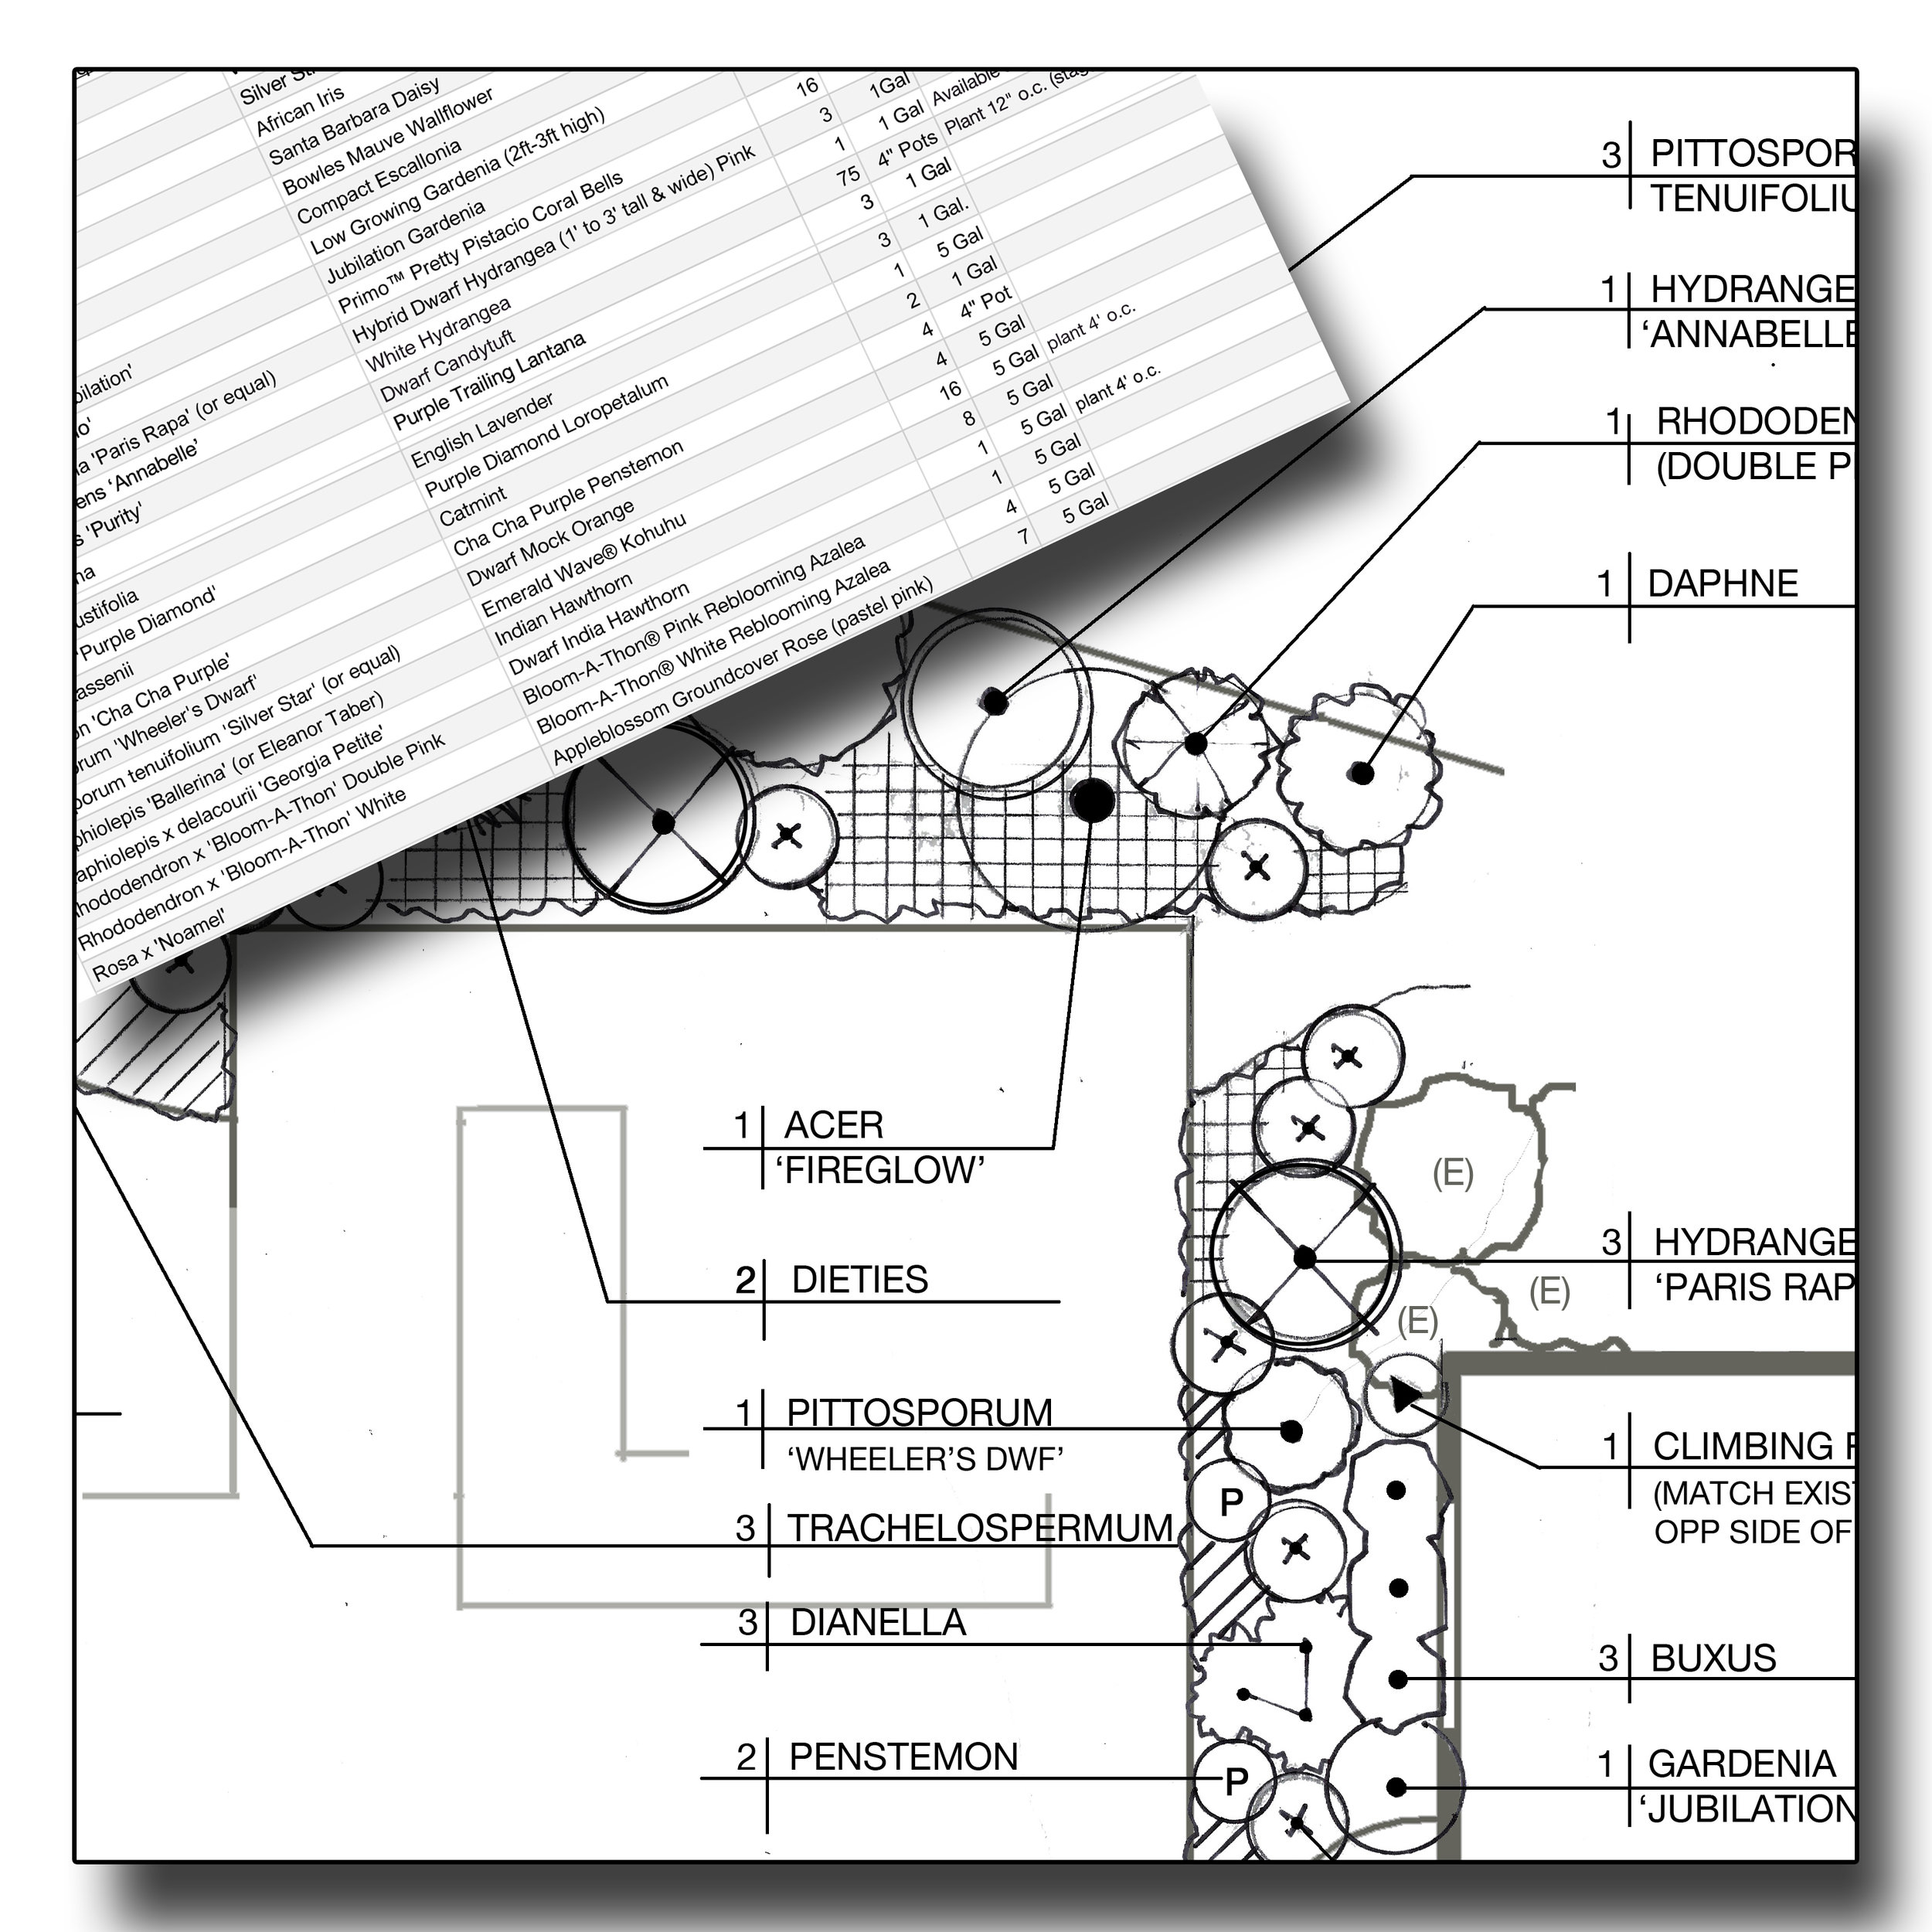 Planting Plan - Once the Master Plan is finalized, I'll prepare a Planting Plan and Plant List which may be used by a landscape contractor to design an irrigation system and install the planting. The planting plan and list specify precise plant locations, botanical and common names, plant quantities, container sizes, and basic planting specifications.